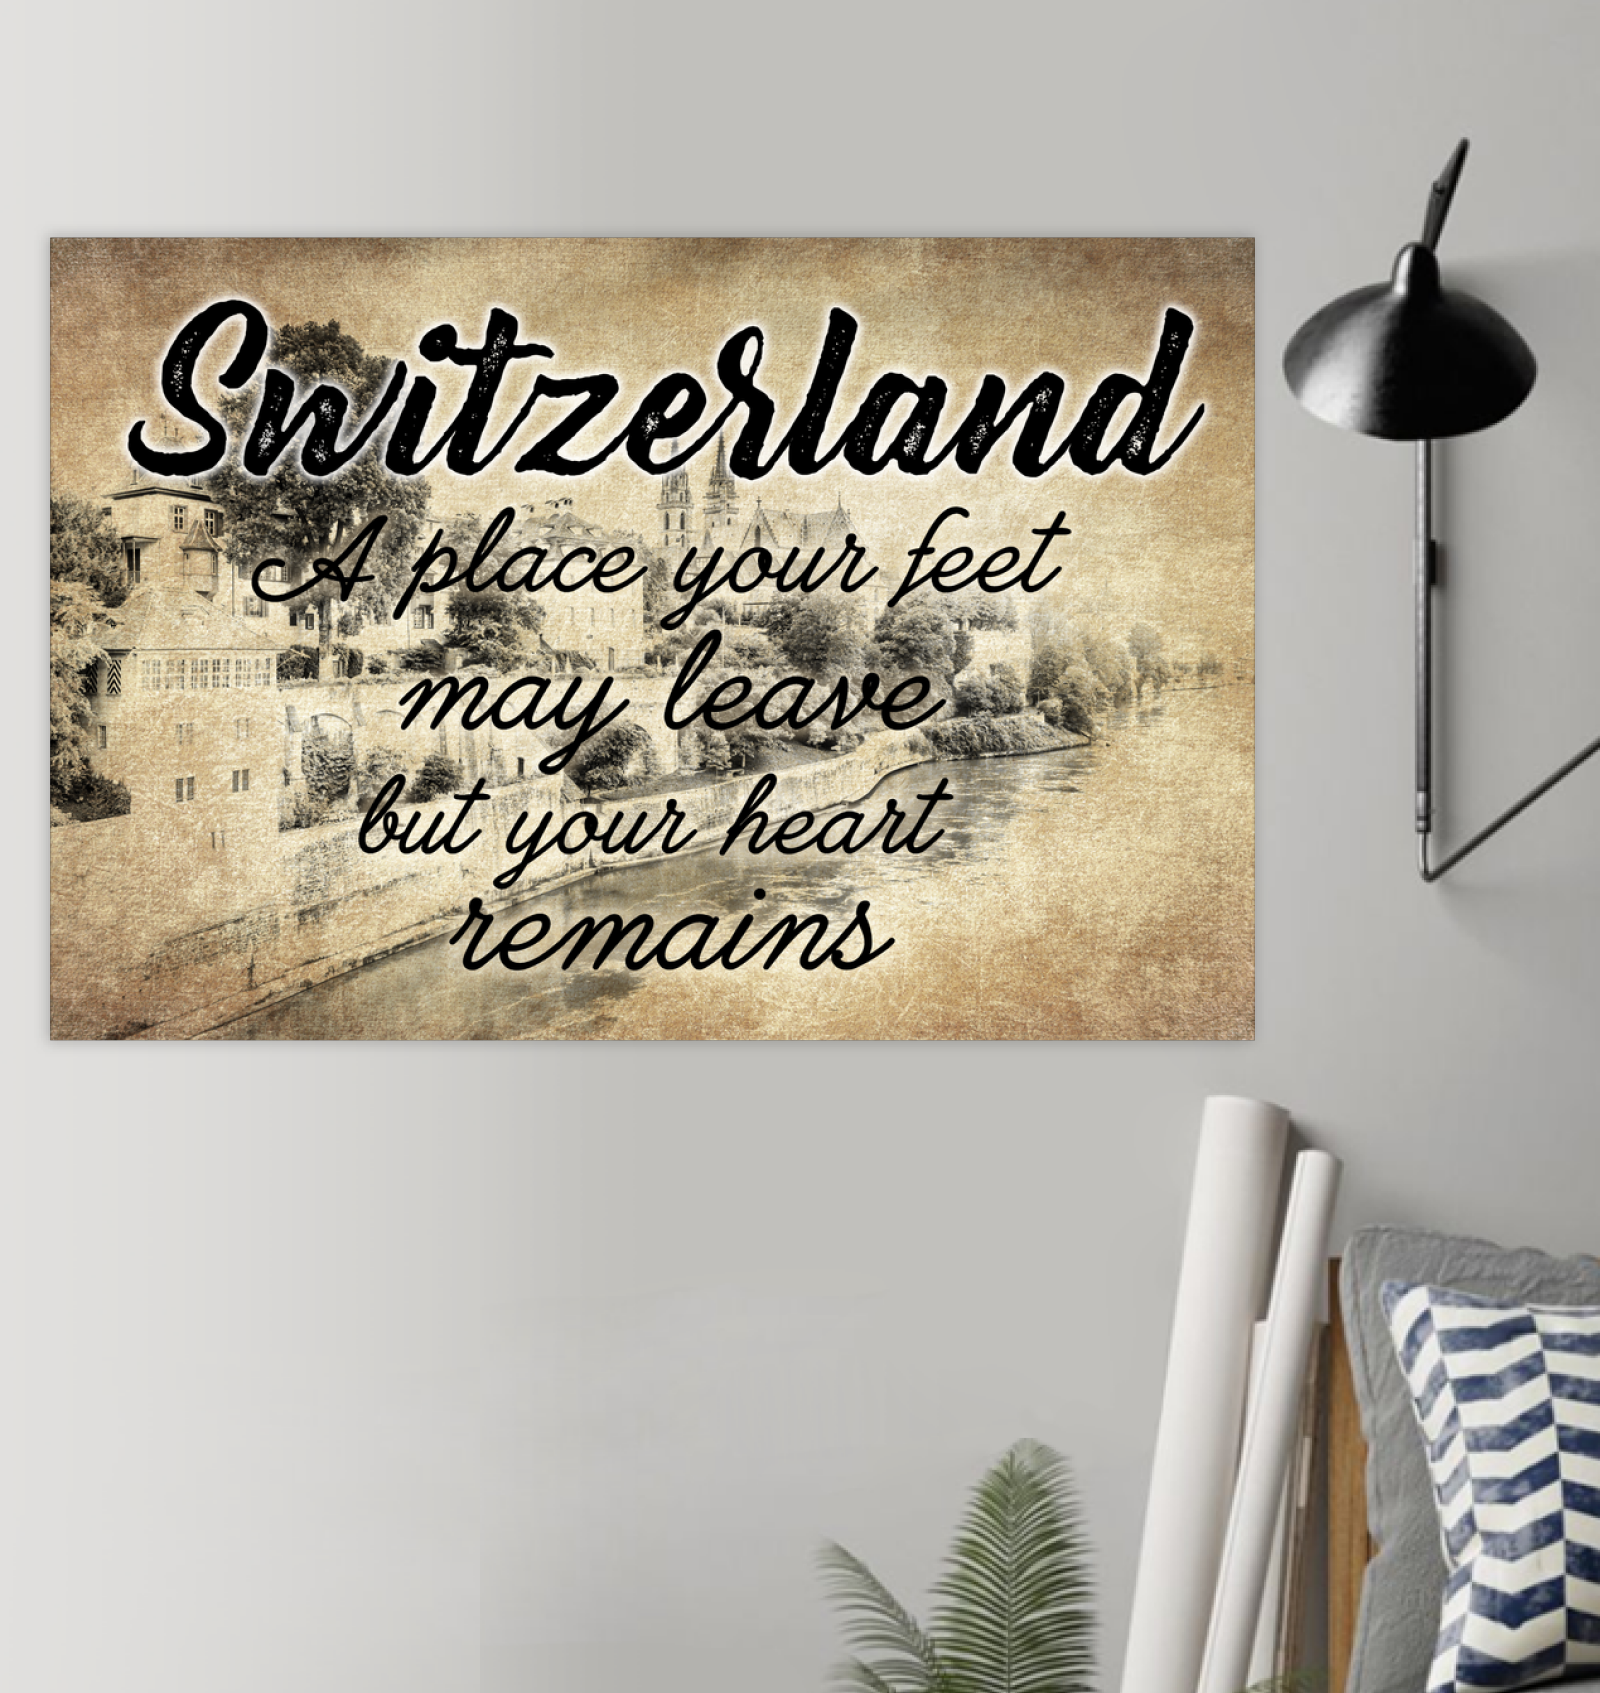 SWITZERLAND A PLACE YOUR FEET MAY LEAVE BUT YOUR HEART REMAINS